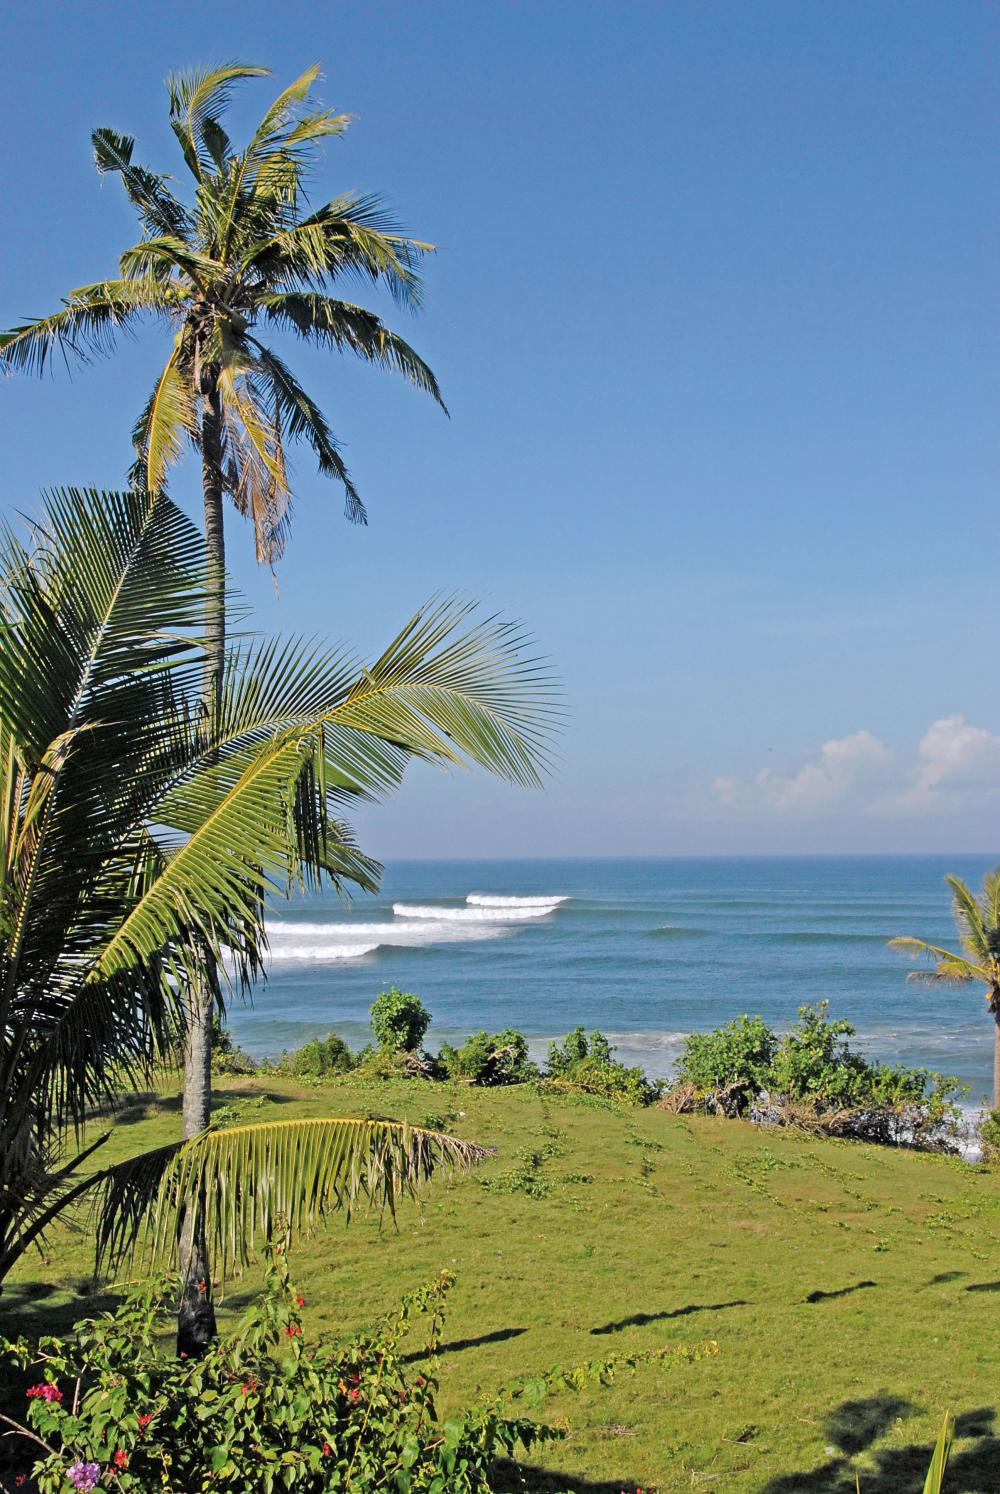 Balian rivermouth, 3 hours drive from Kuta. Photo Troy Roennfeldt, www.baliwaves.com